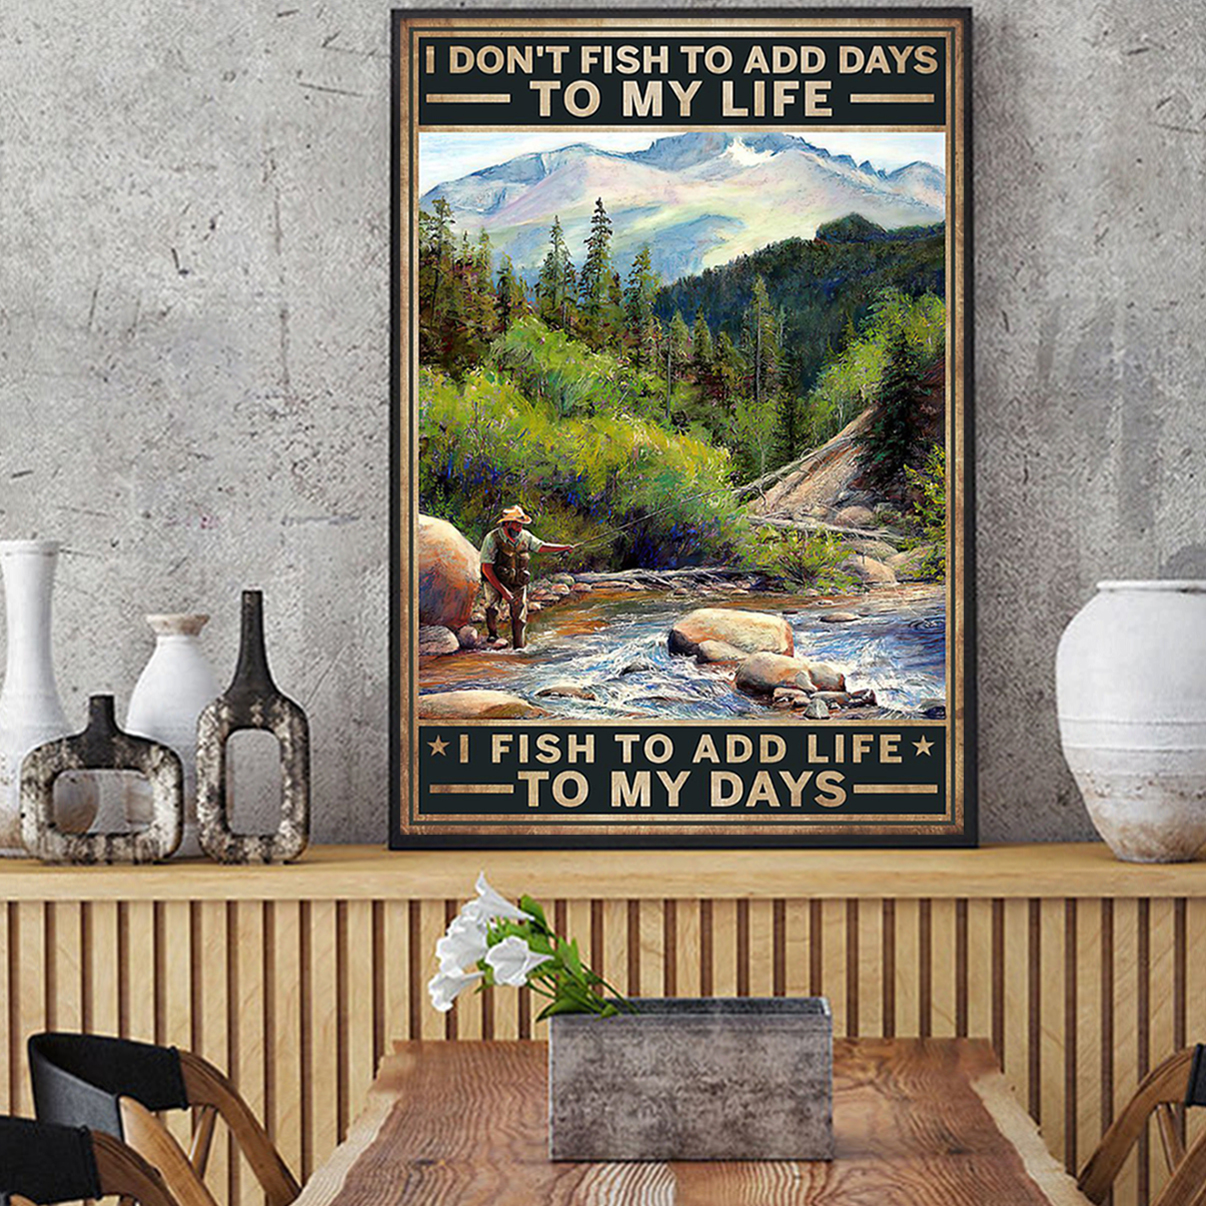 I don't fish to add days to my life I fish to add life to my days poster A2